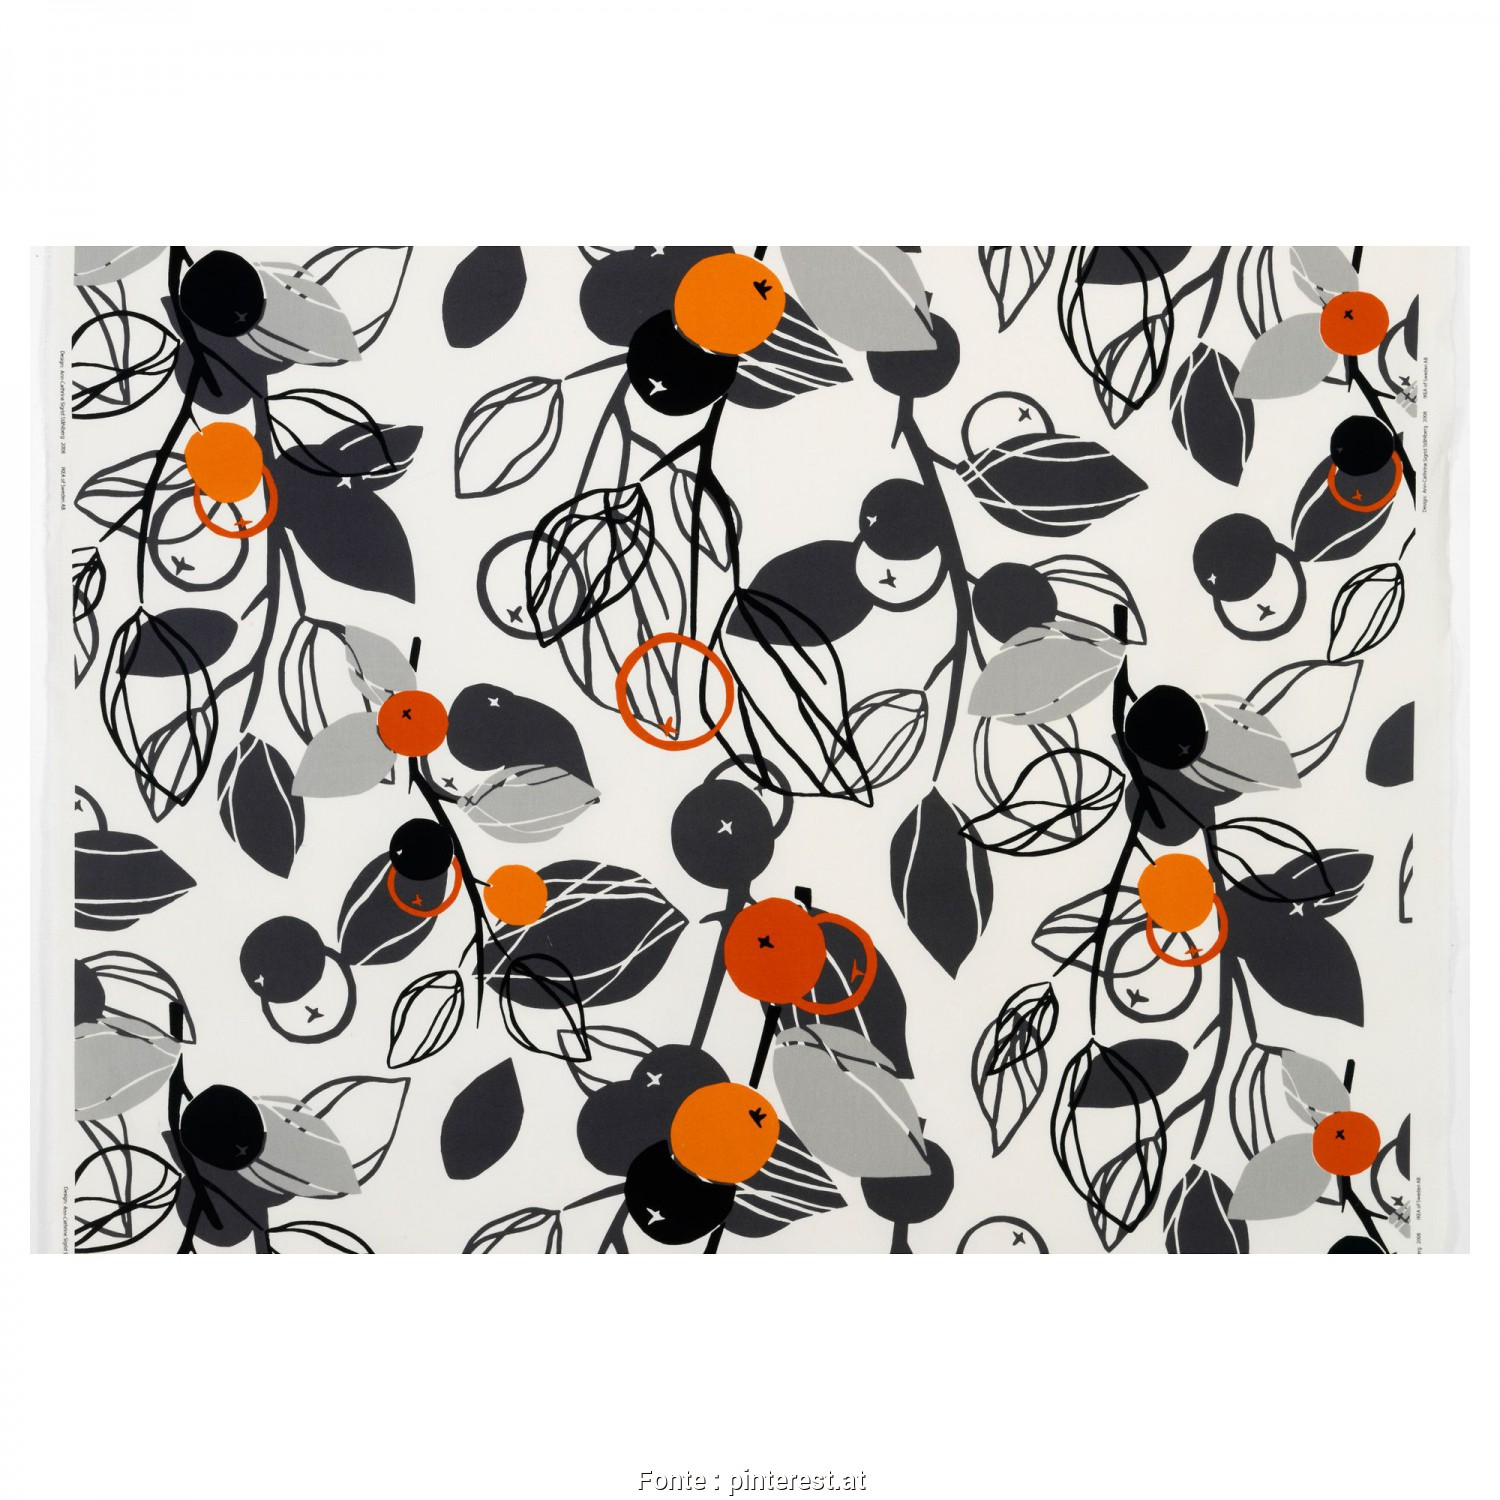 Stoffe Ikea, Fantasia MAJKEN Fabric, IKEA, |ORANGE| Furniture+Decor, Pinterest, Ikea